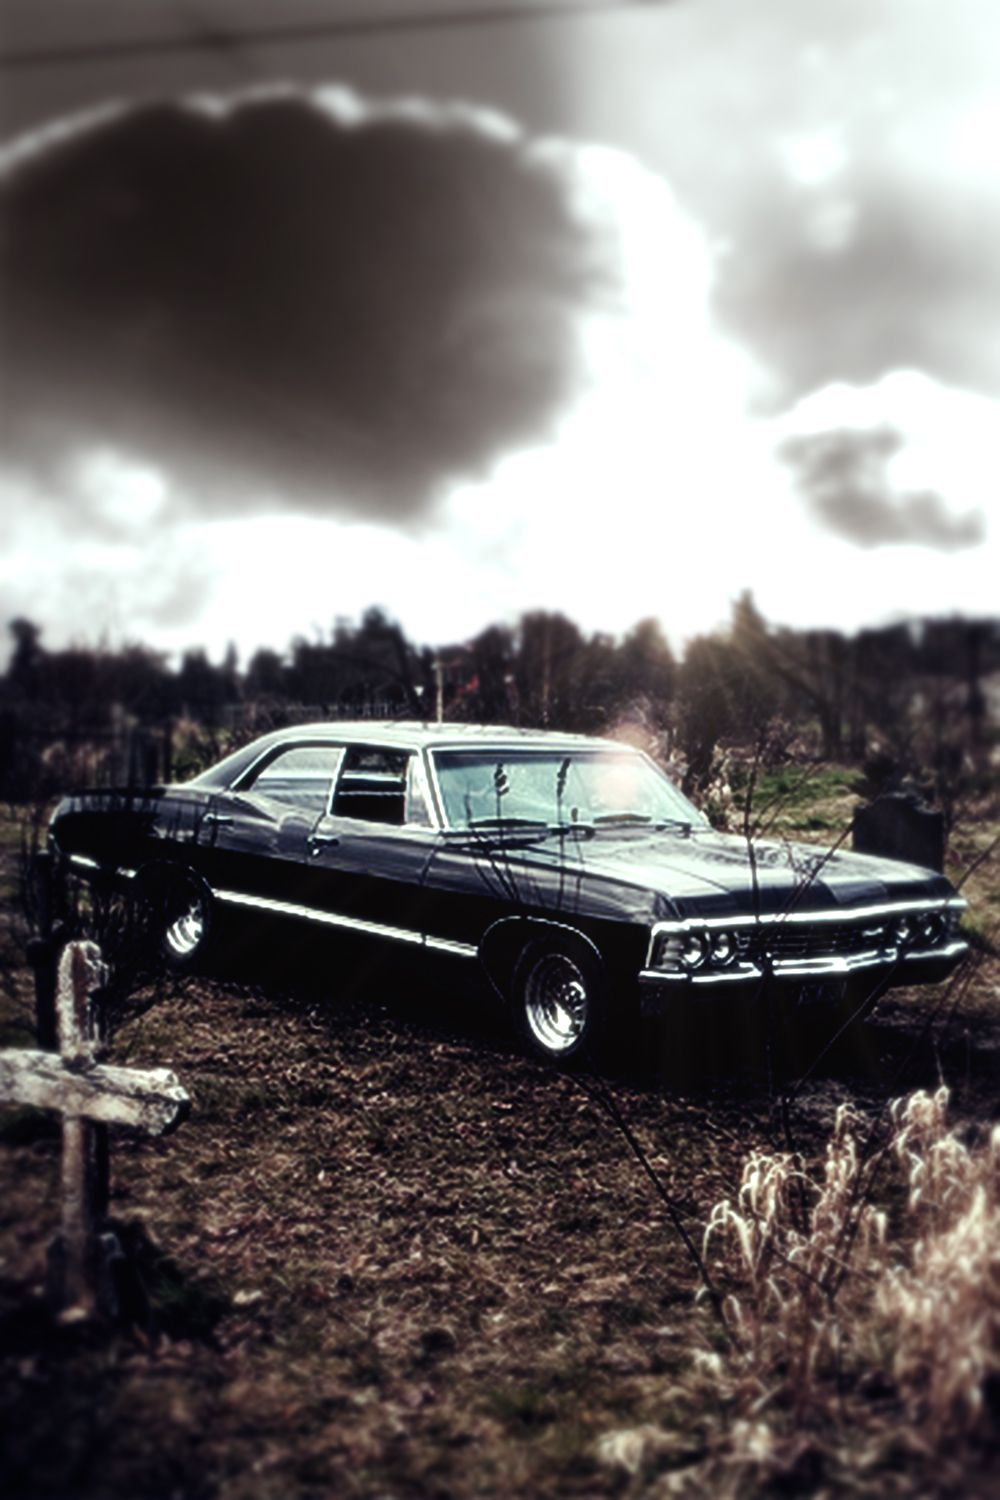 1000x1500 Image - Supernatural 67 chevy impala iphone wallpaper by xerix93 ...